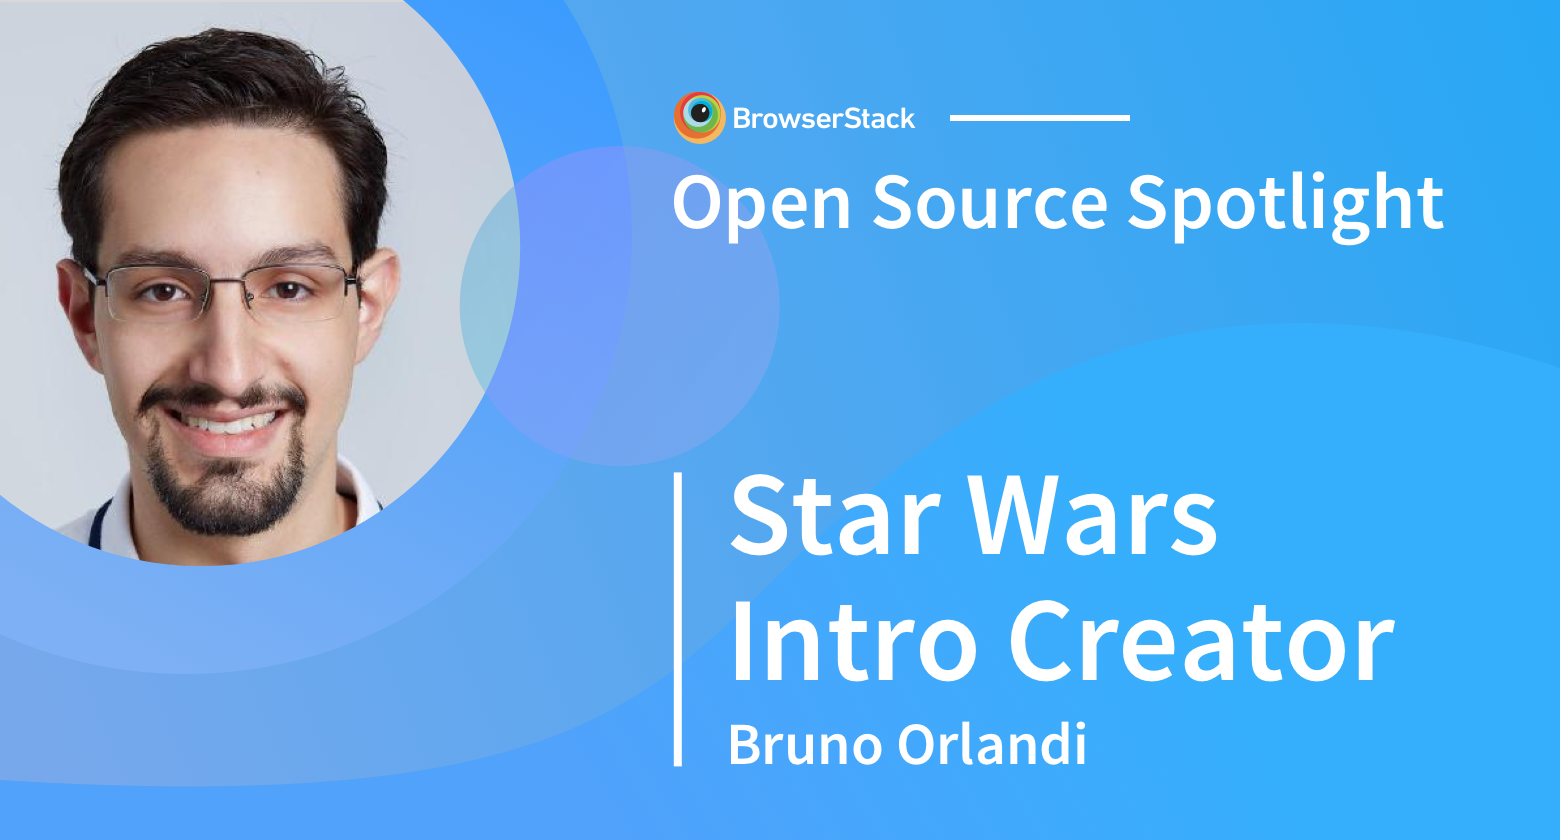 Open Source Spotlight: Star Wars Intro Creator with Bruno Orlandi